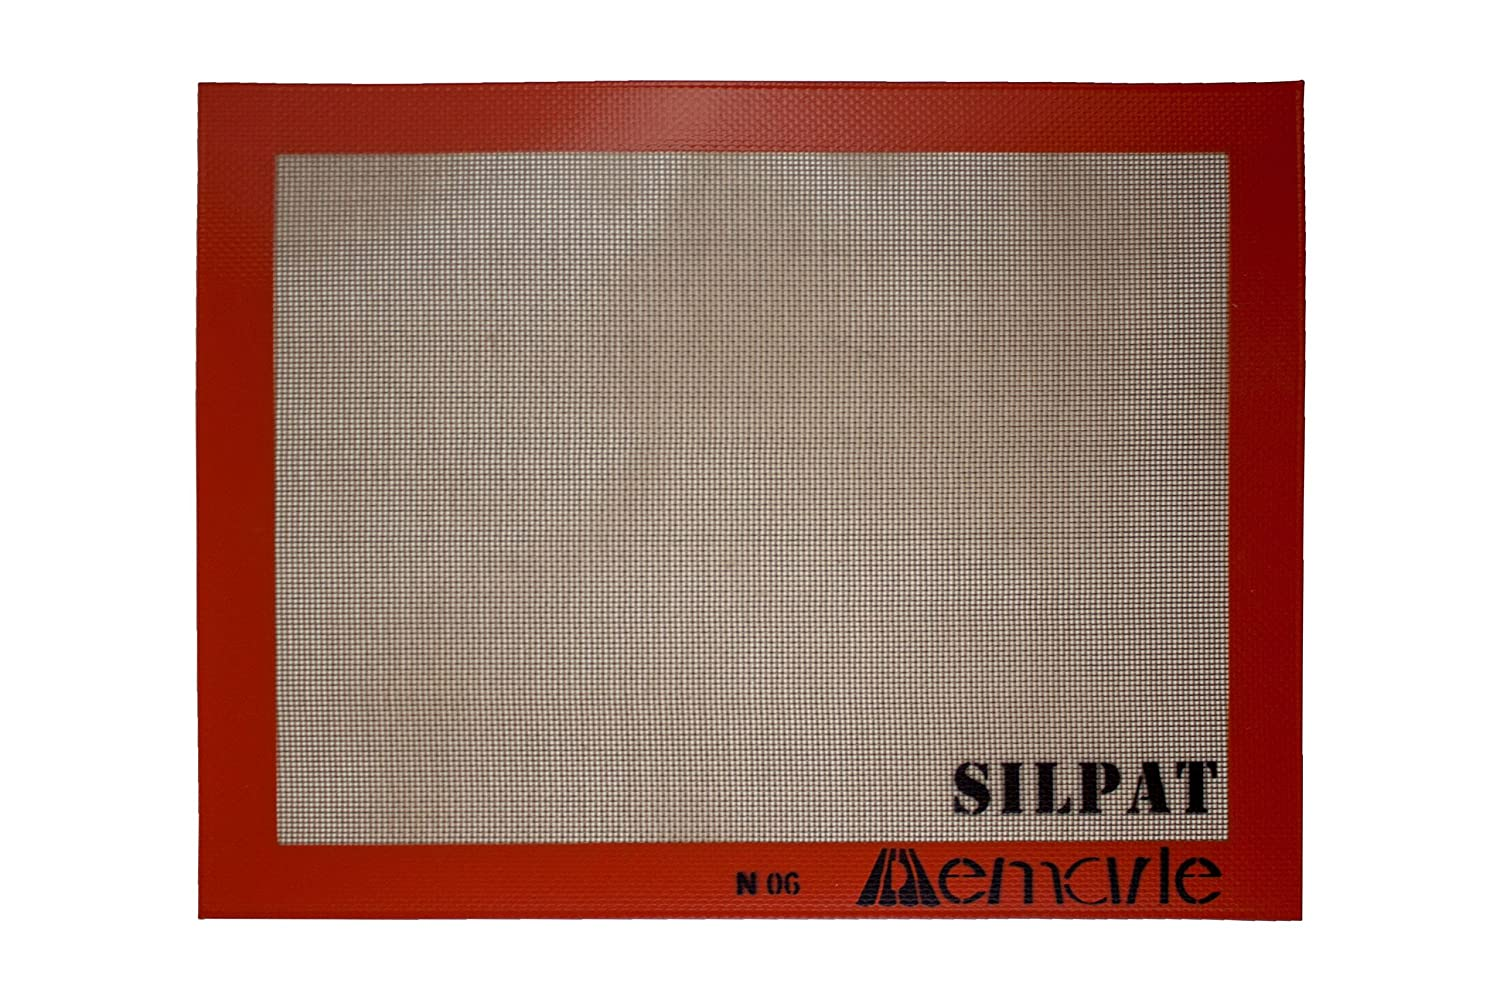 DeMarle Silpat Non-Stick Baking Sheets 40 x 30 cm